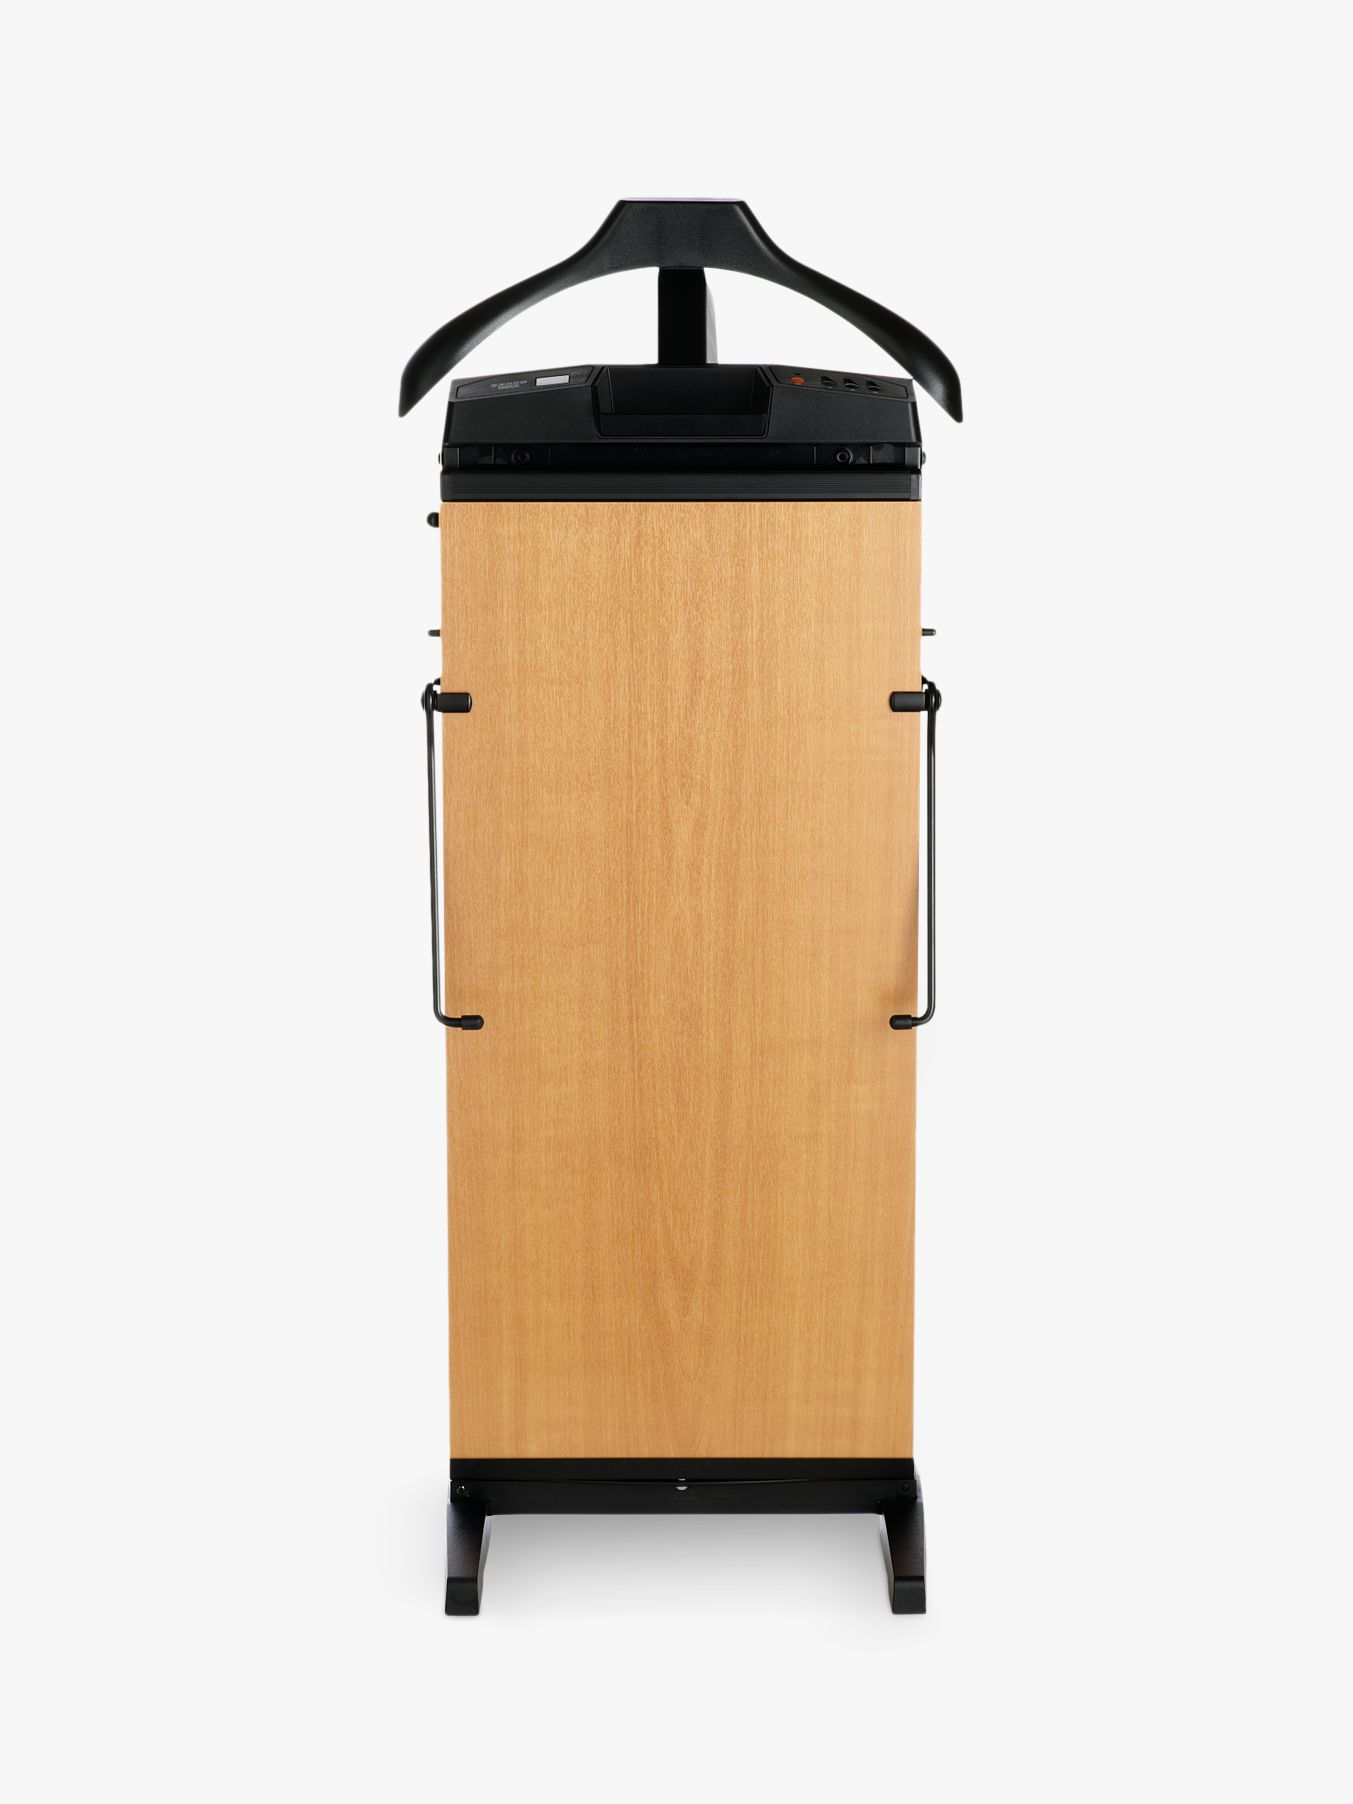 Shirt and trouser presses